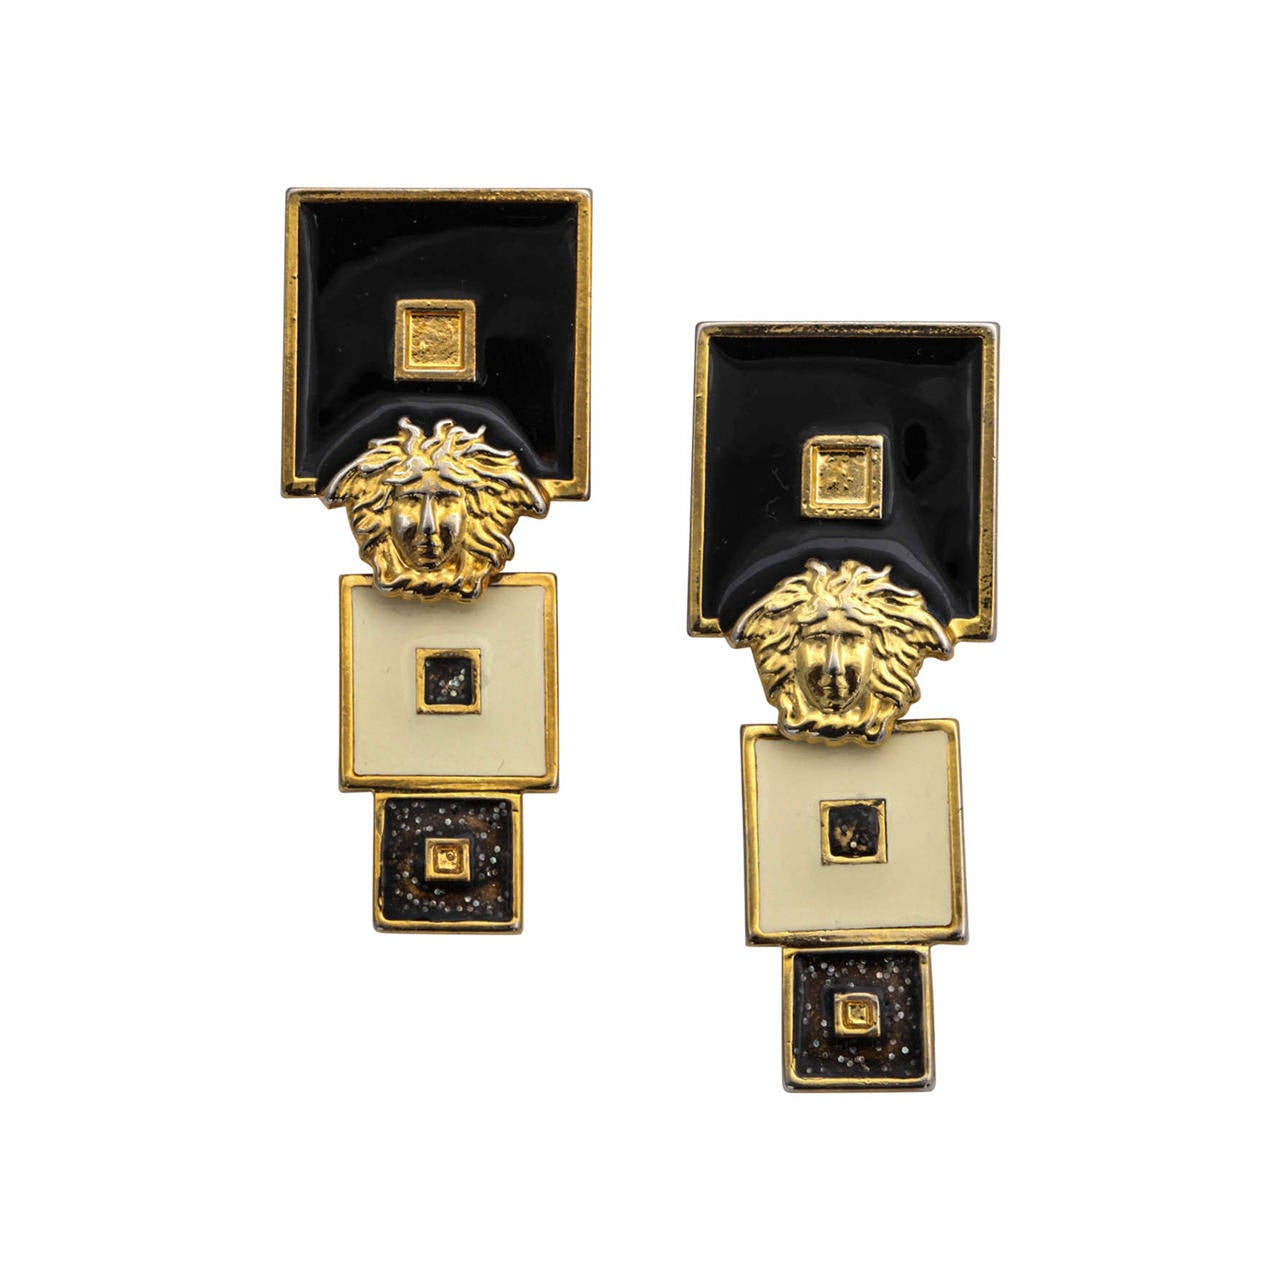 Vintage Gianni Versace Black/White Earrings For Sale